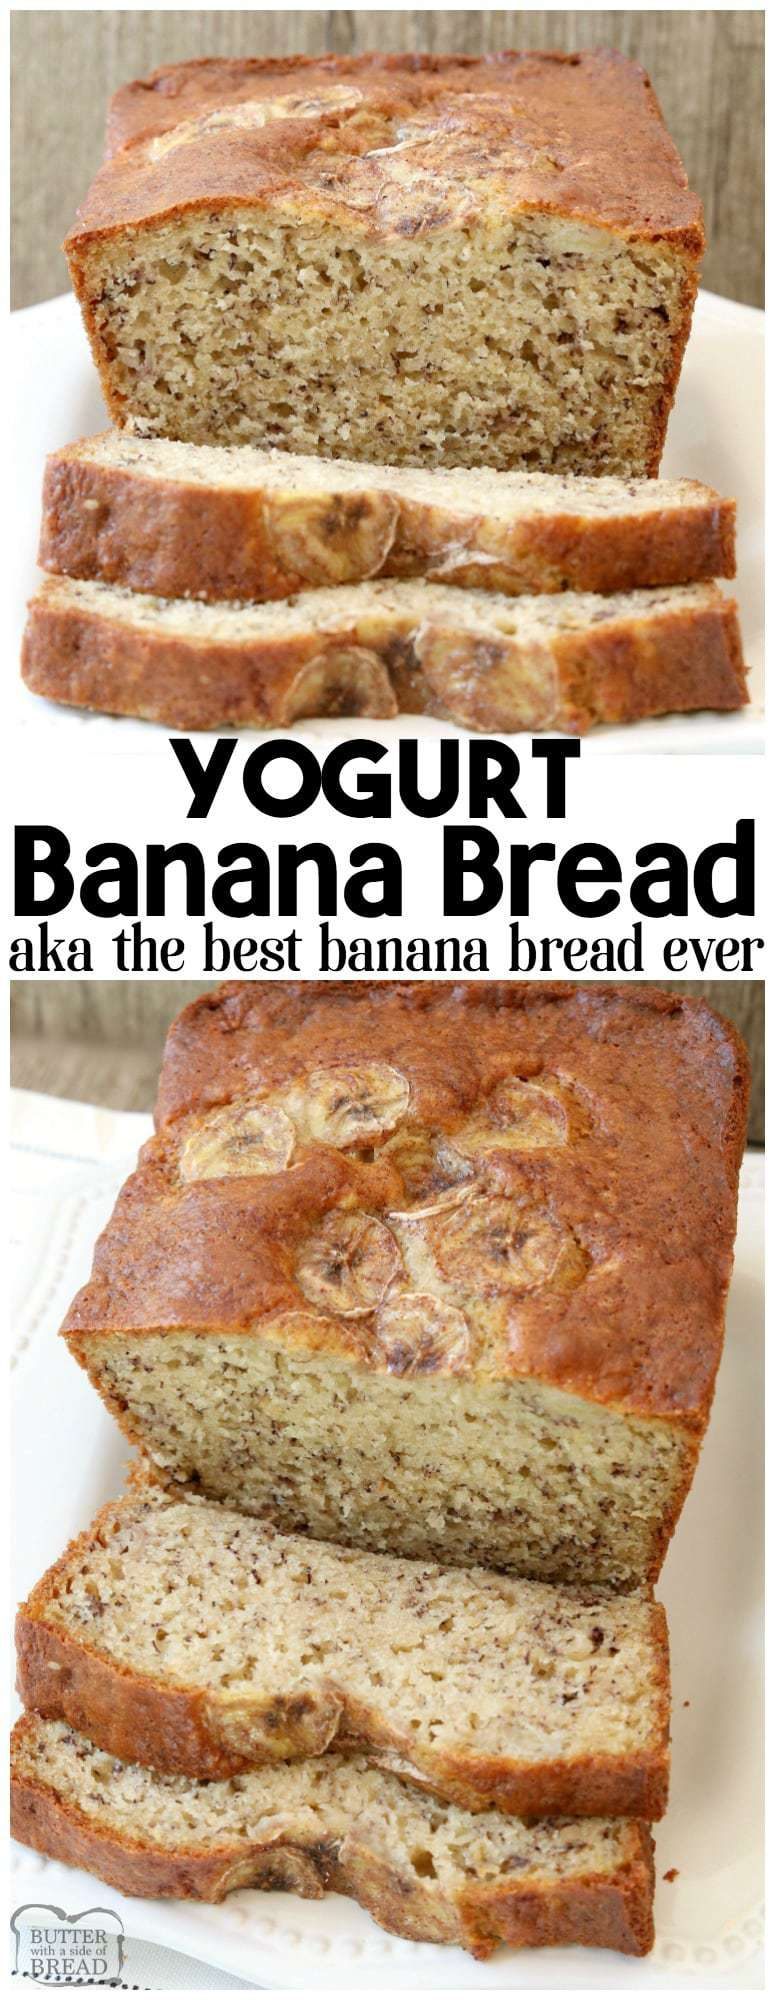 Yogurt Banana Bread is the BEST banana bread recipe ever! Made with yogurt and ripe bananas, it's super easy to make, light, moist & has the best quick bread flavor.